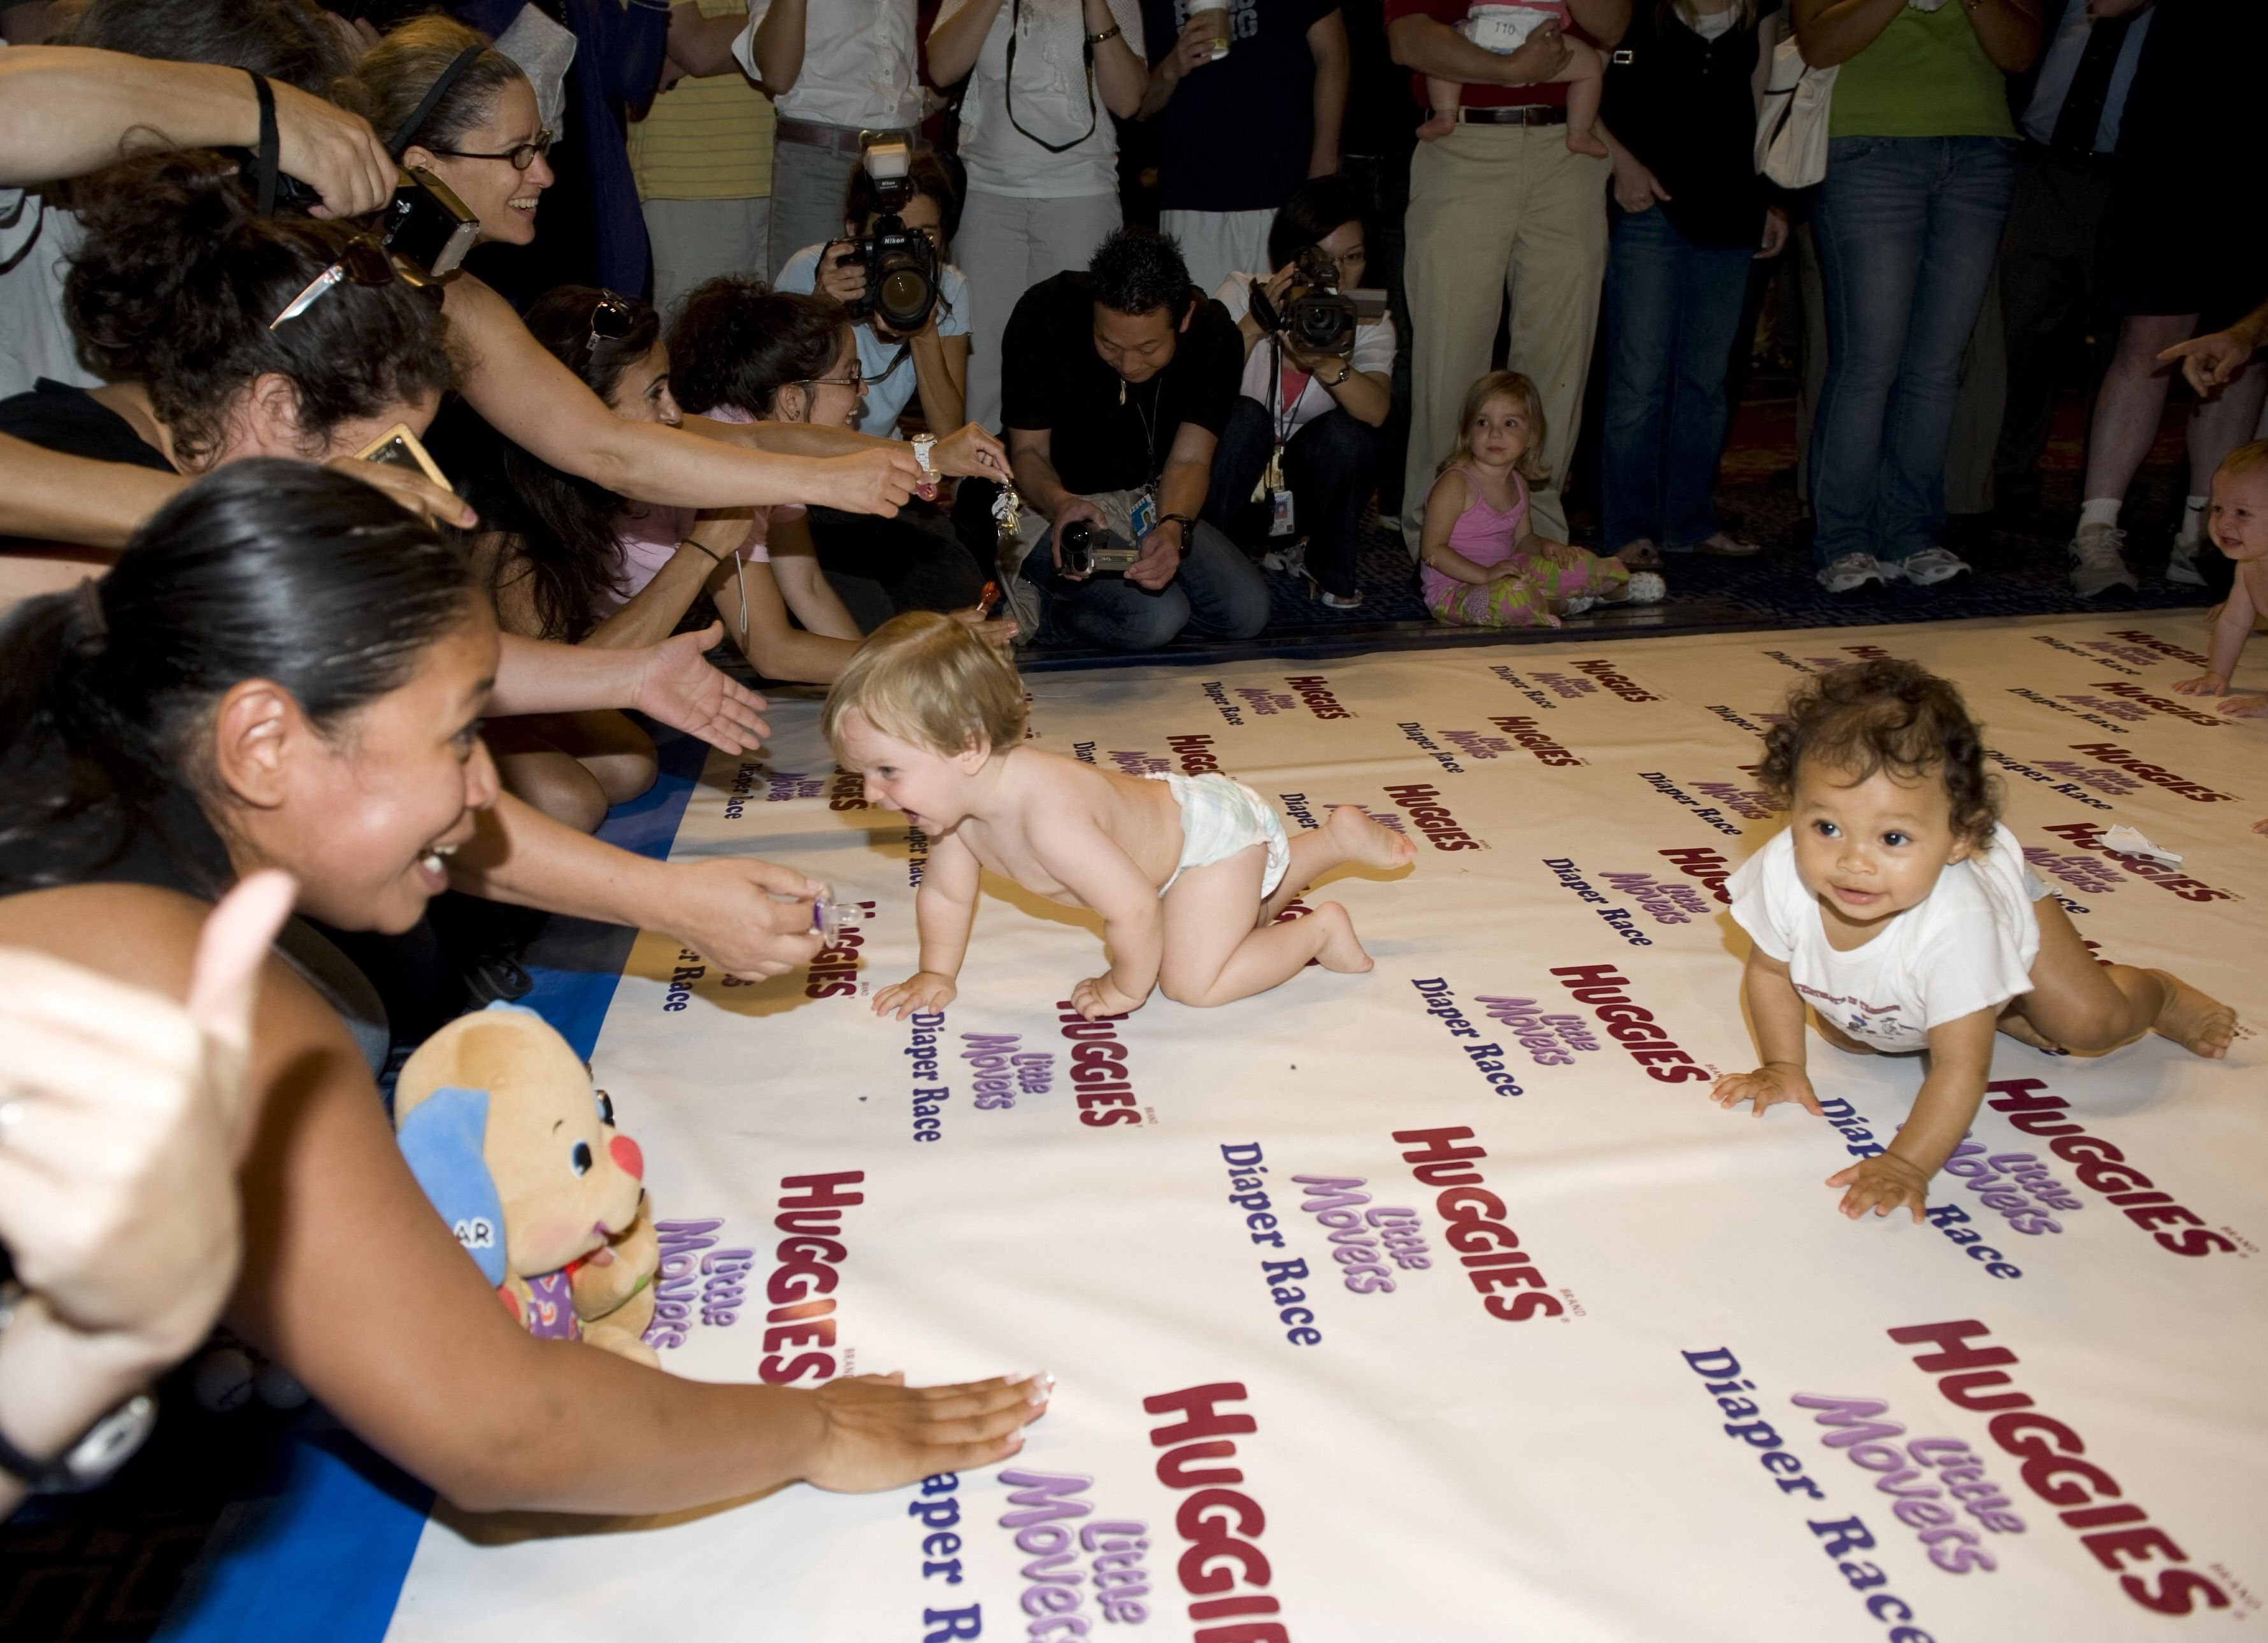 Babies are coached toward the finish line by their parents during a baby race in New York City, New York, the U.S., July 24, 2009. (AFP Photo)